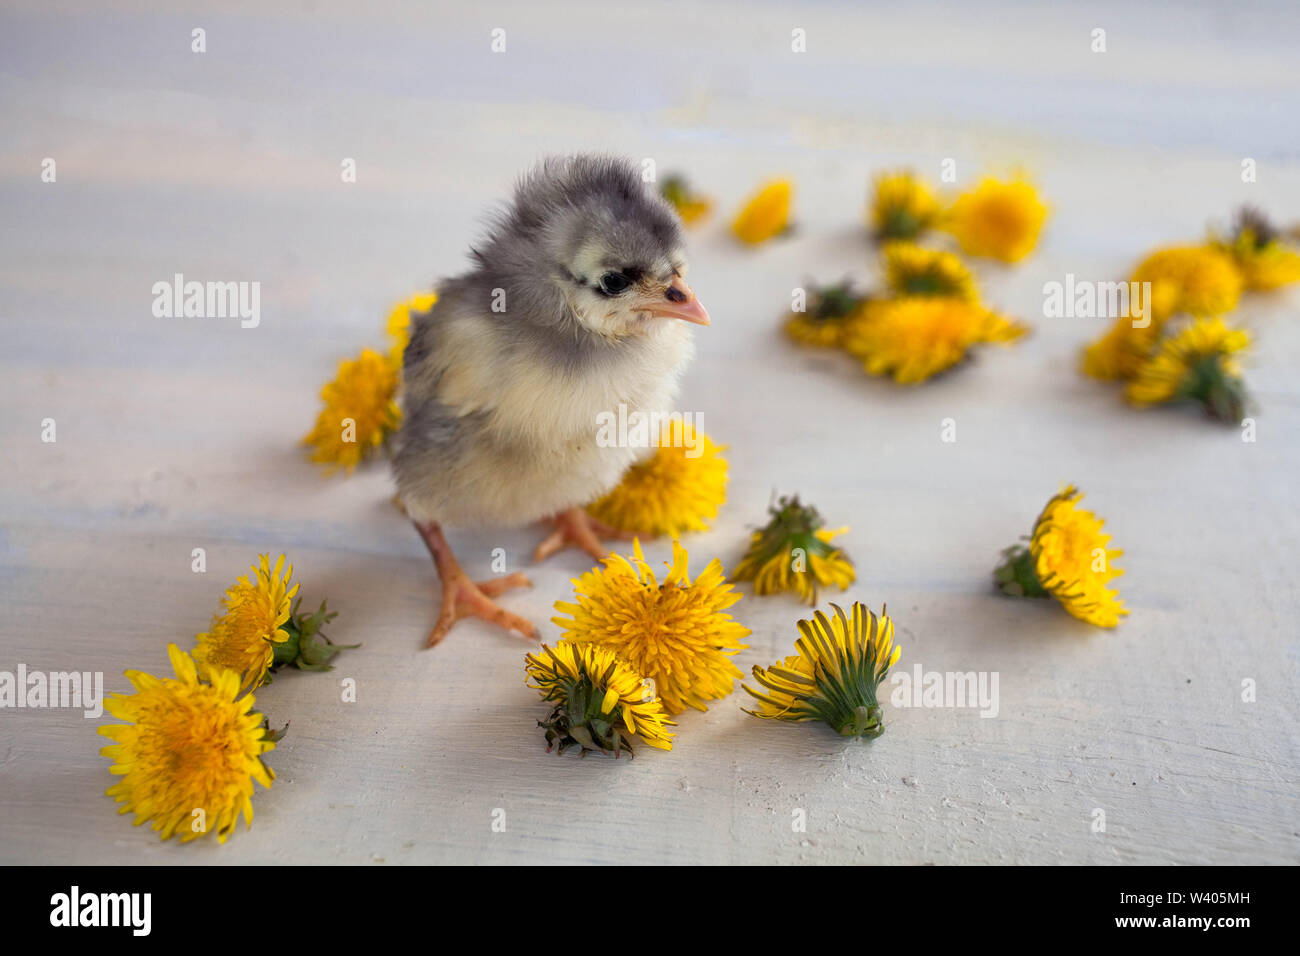 Chick of gray color of breed of dominants costs among yellow dandelions - Stock Image